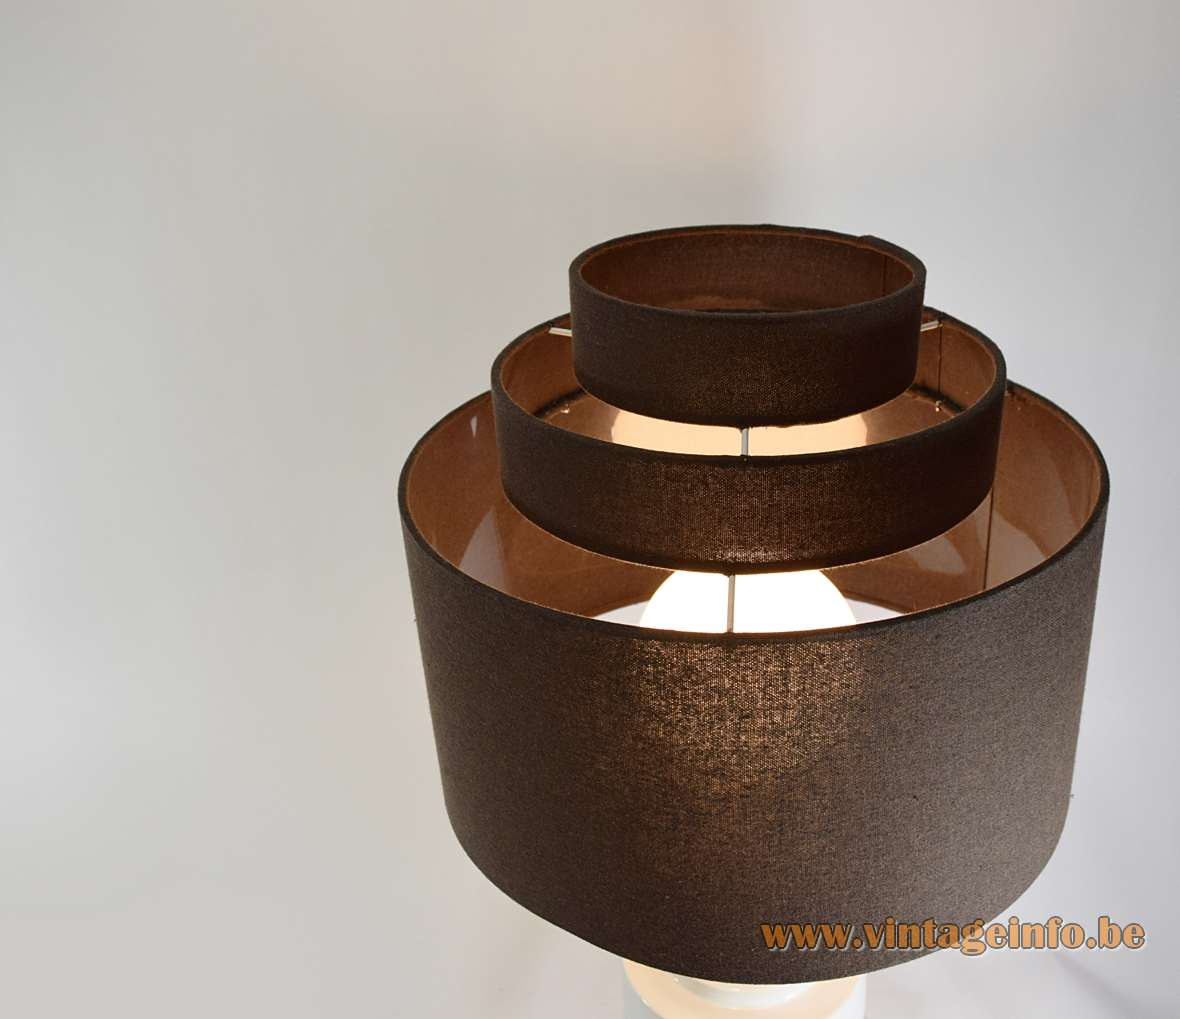 Prof. Petucco table lamp white glazed round ceramics base brown layered fabric lampshade 1970s Italy